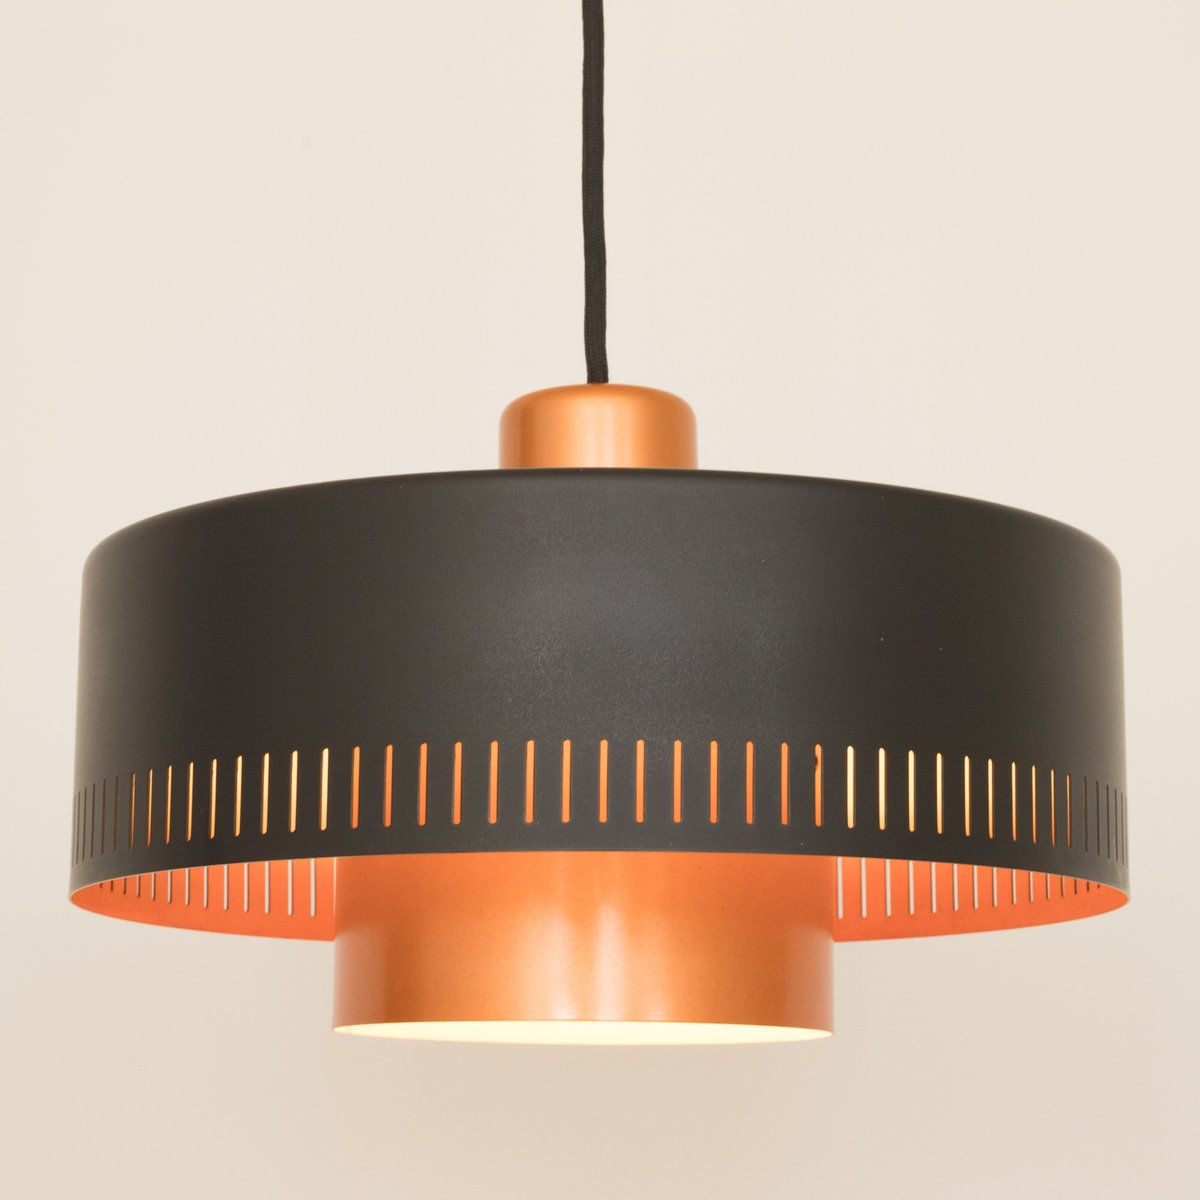 Vintage Metro Pendant L& by Jo Hammerborg for Fog u0026 Mørup & Vintage Metro Pendant Lamp by Jo Hammerborg for Fog u0026 Mørup for ... azcodes.com